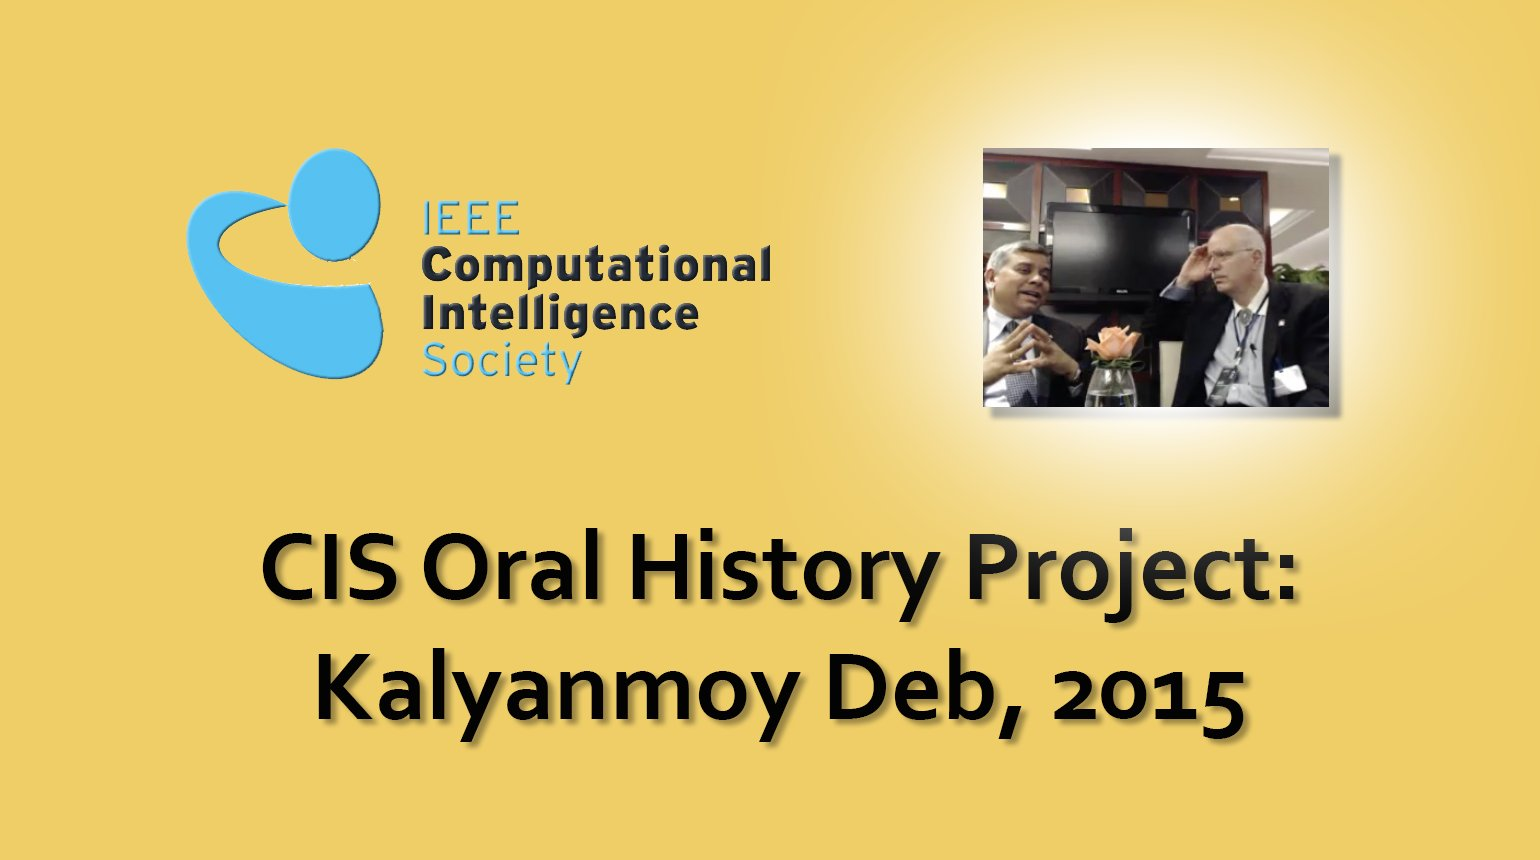 Interview with Kalyanmoy Deb, 2015: CIS Oral History Project